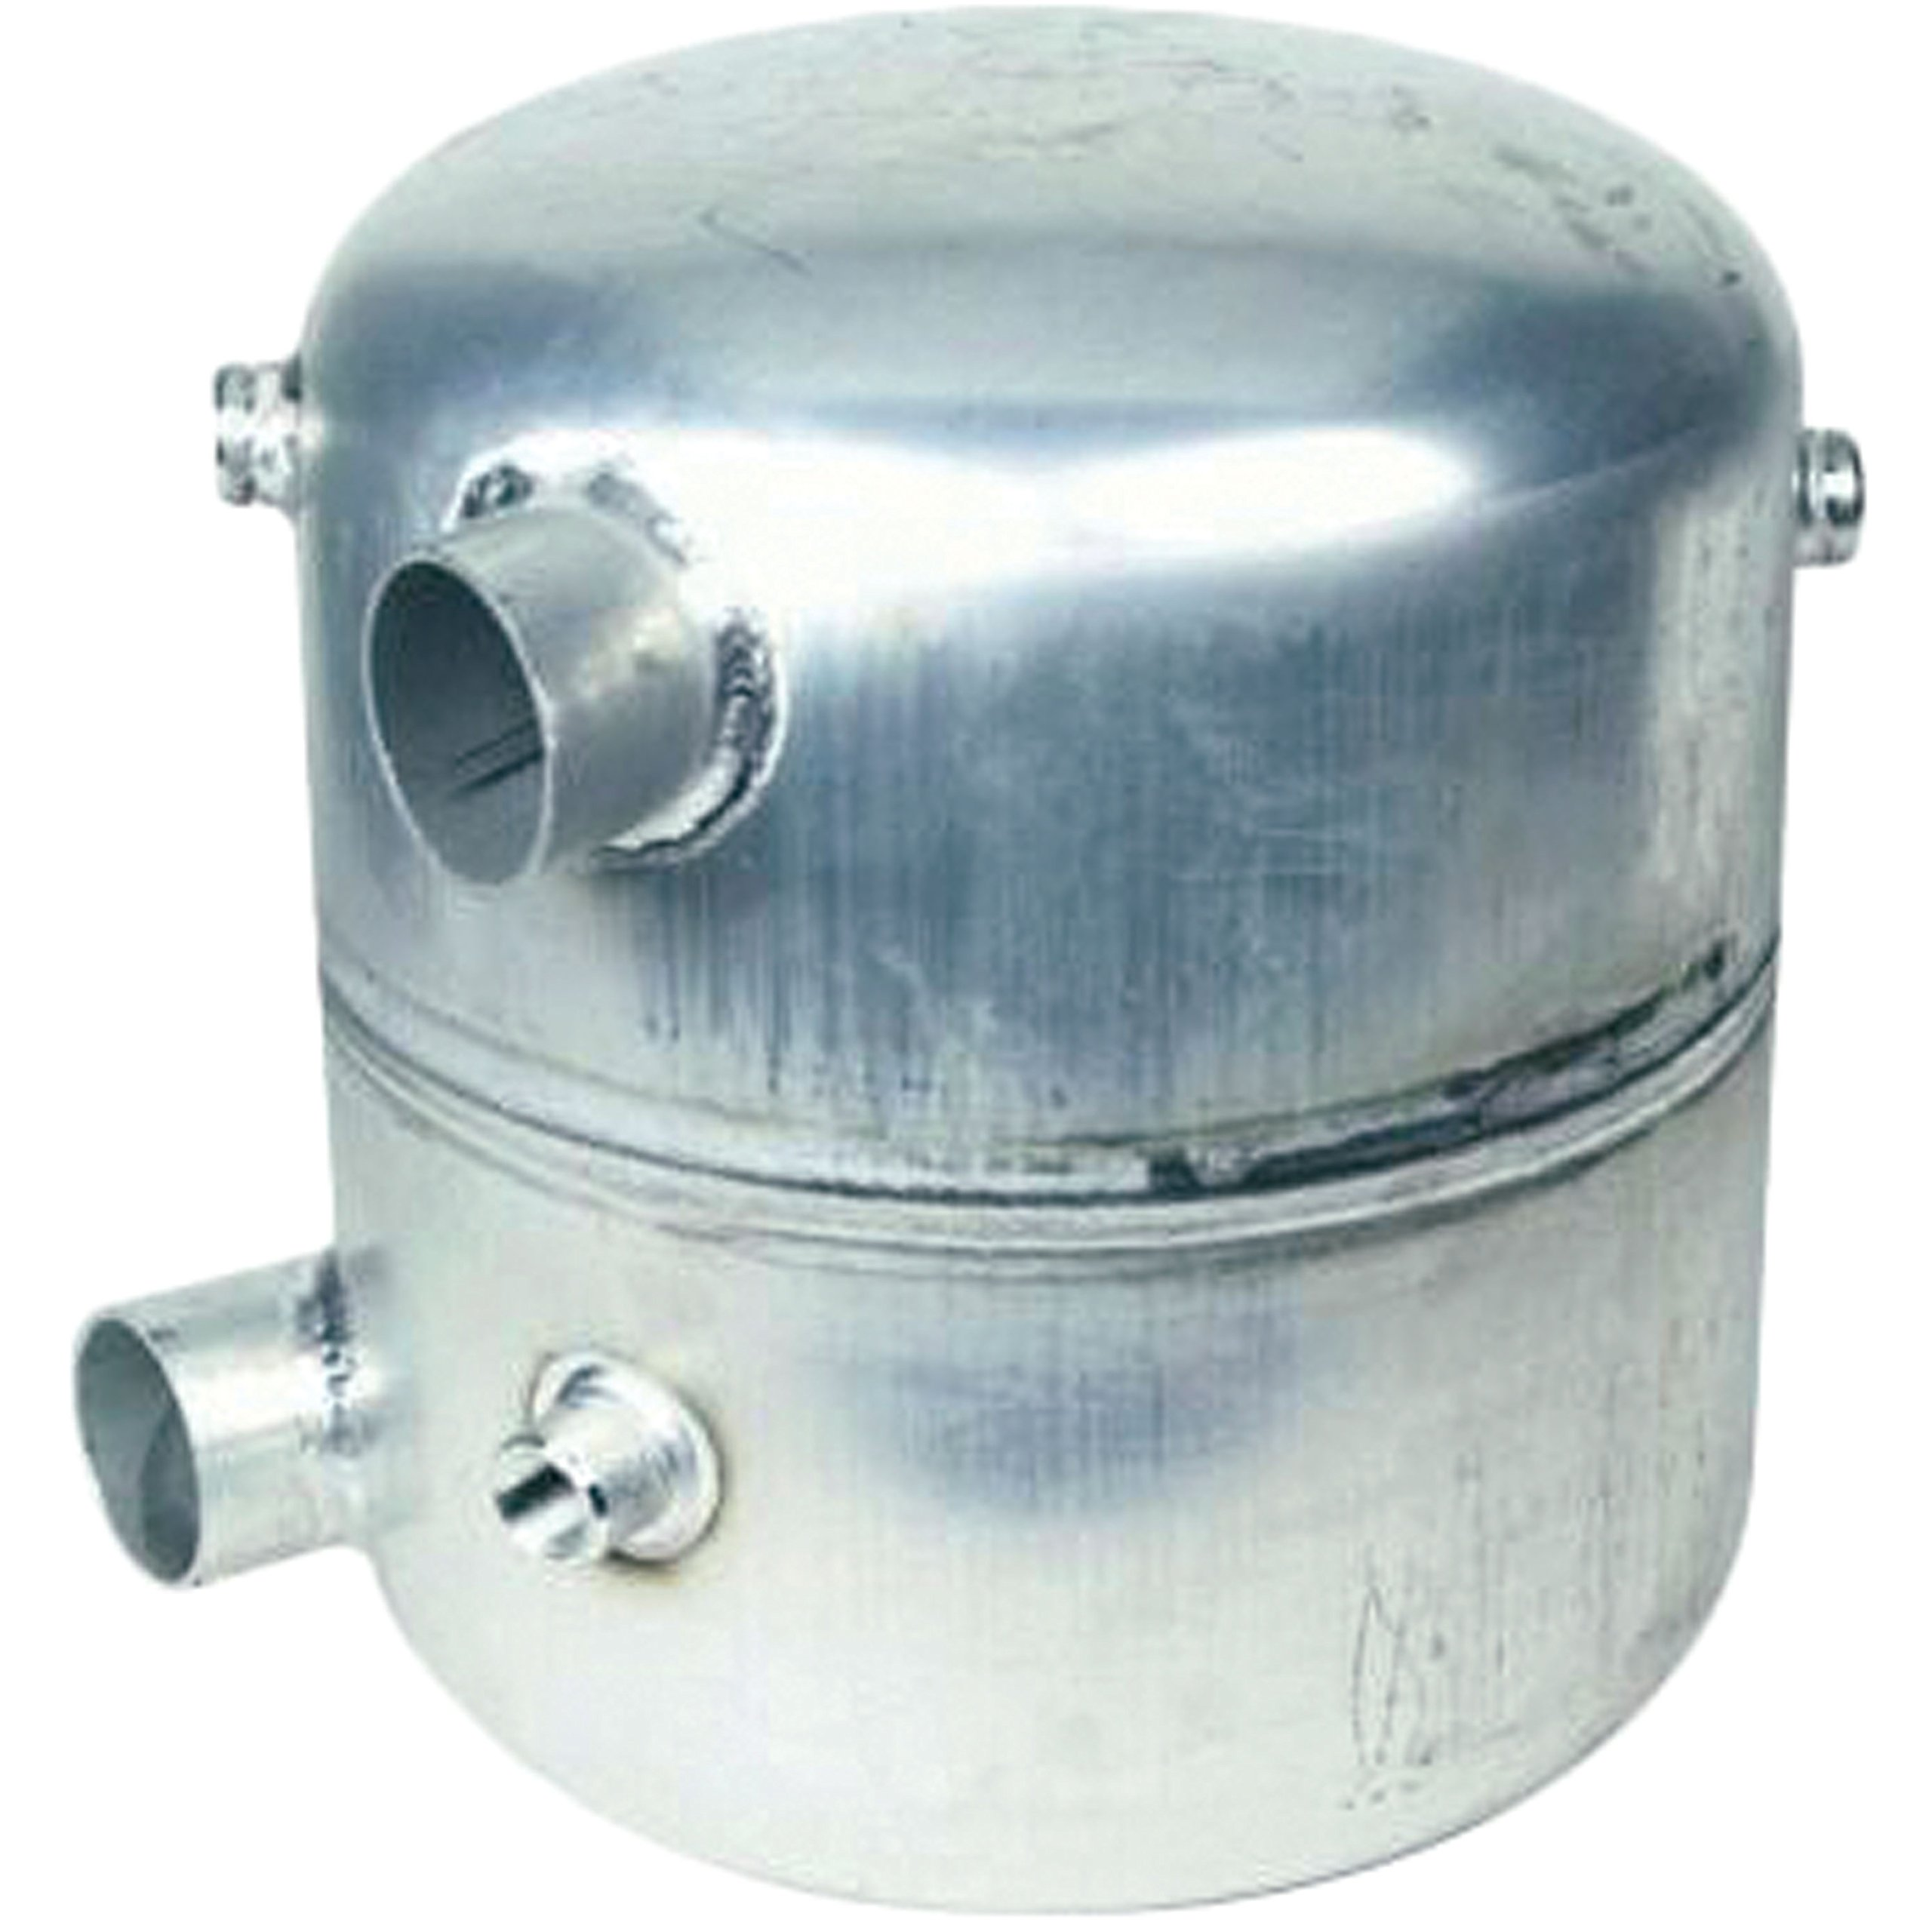 Atwood 91593 Replacement Inner Water Heater Tank-GC6AA-7E & GC6AA-8E by Atwood